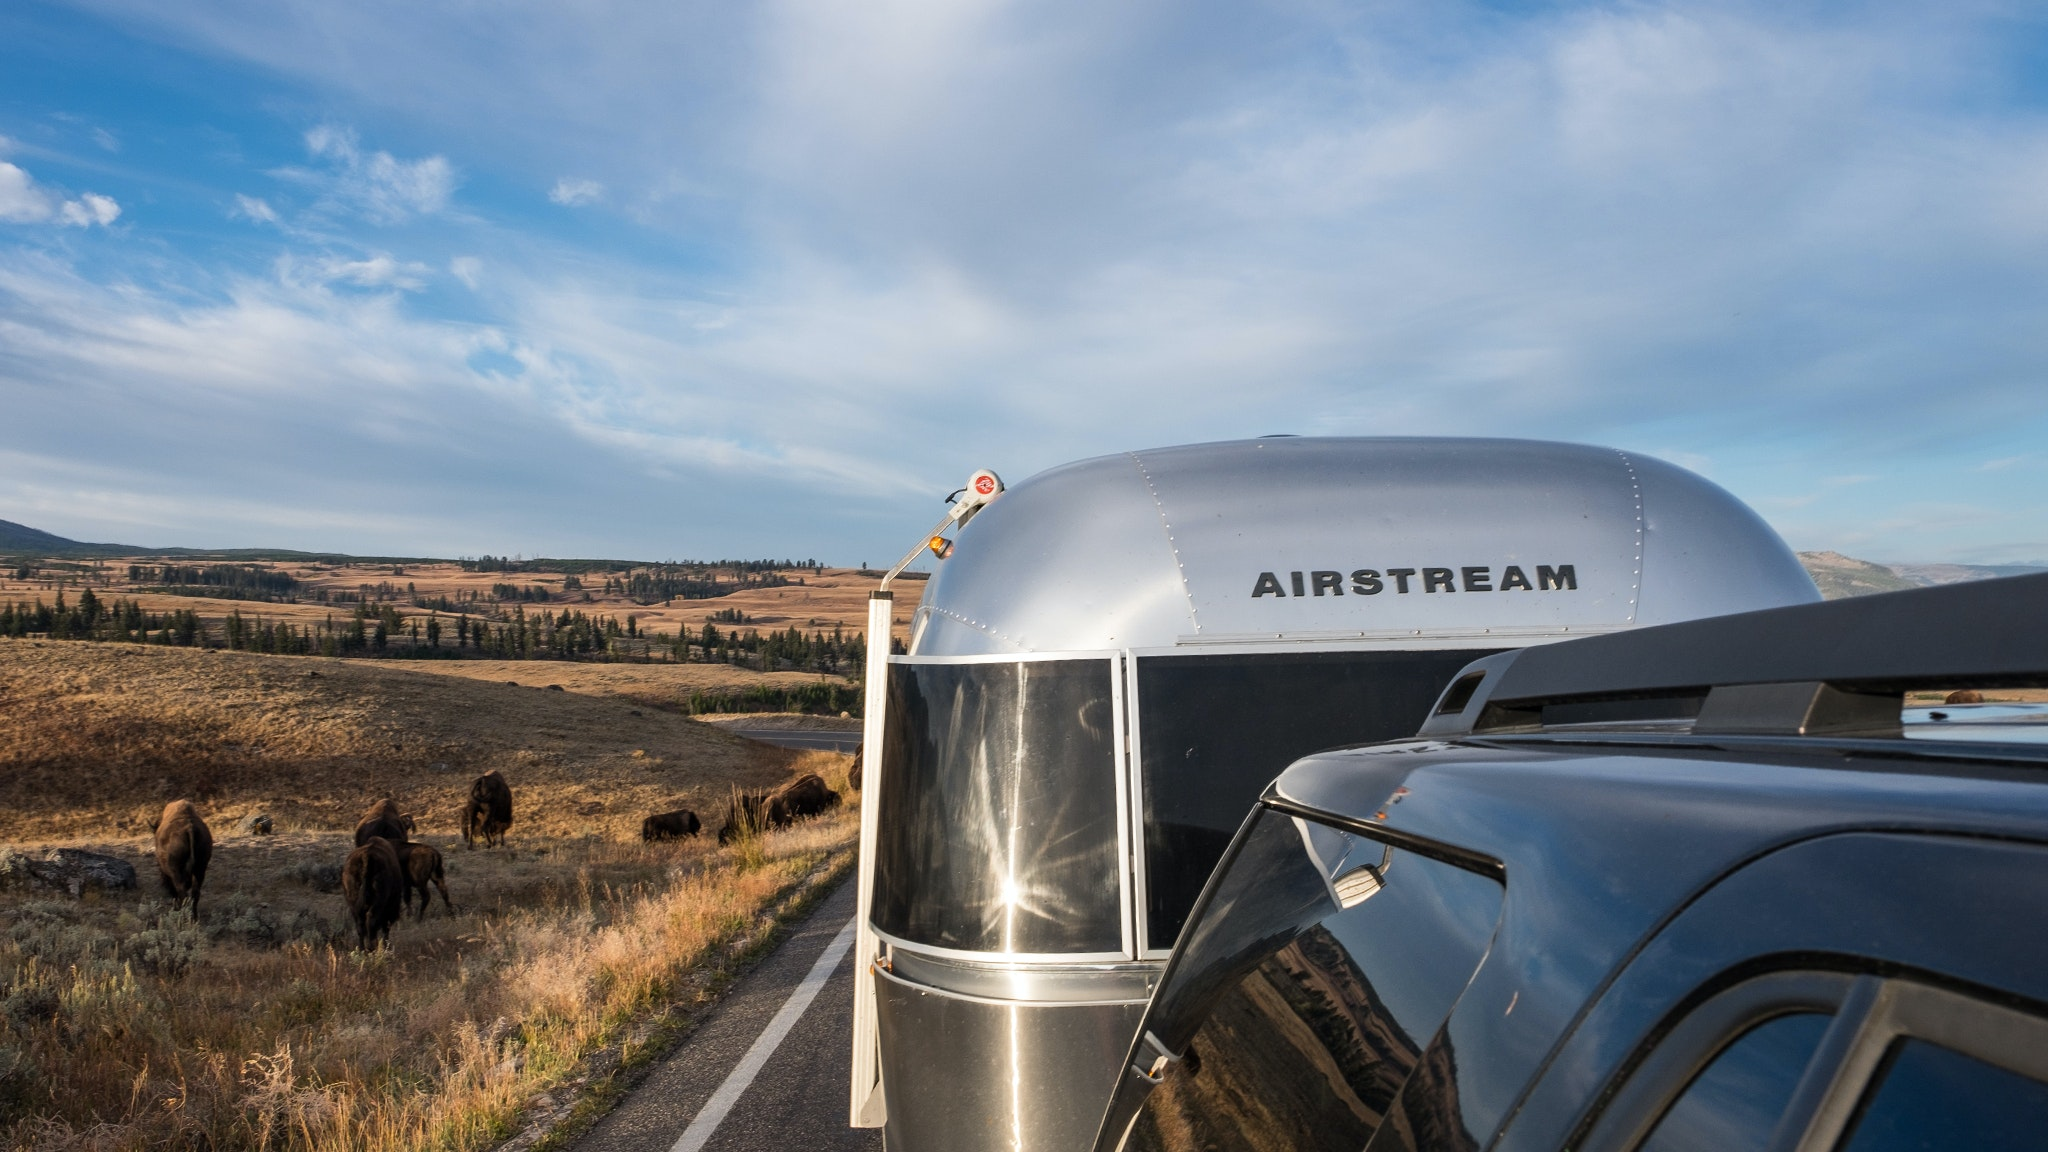 Airstream-National-Park-Camping-2019-Header